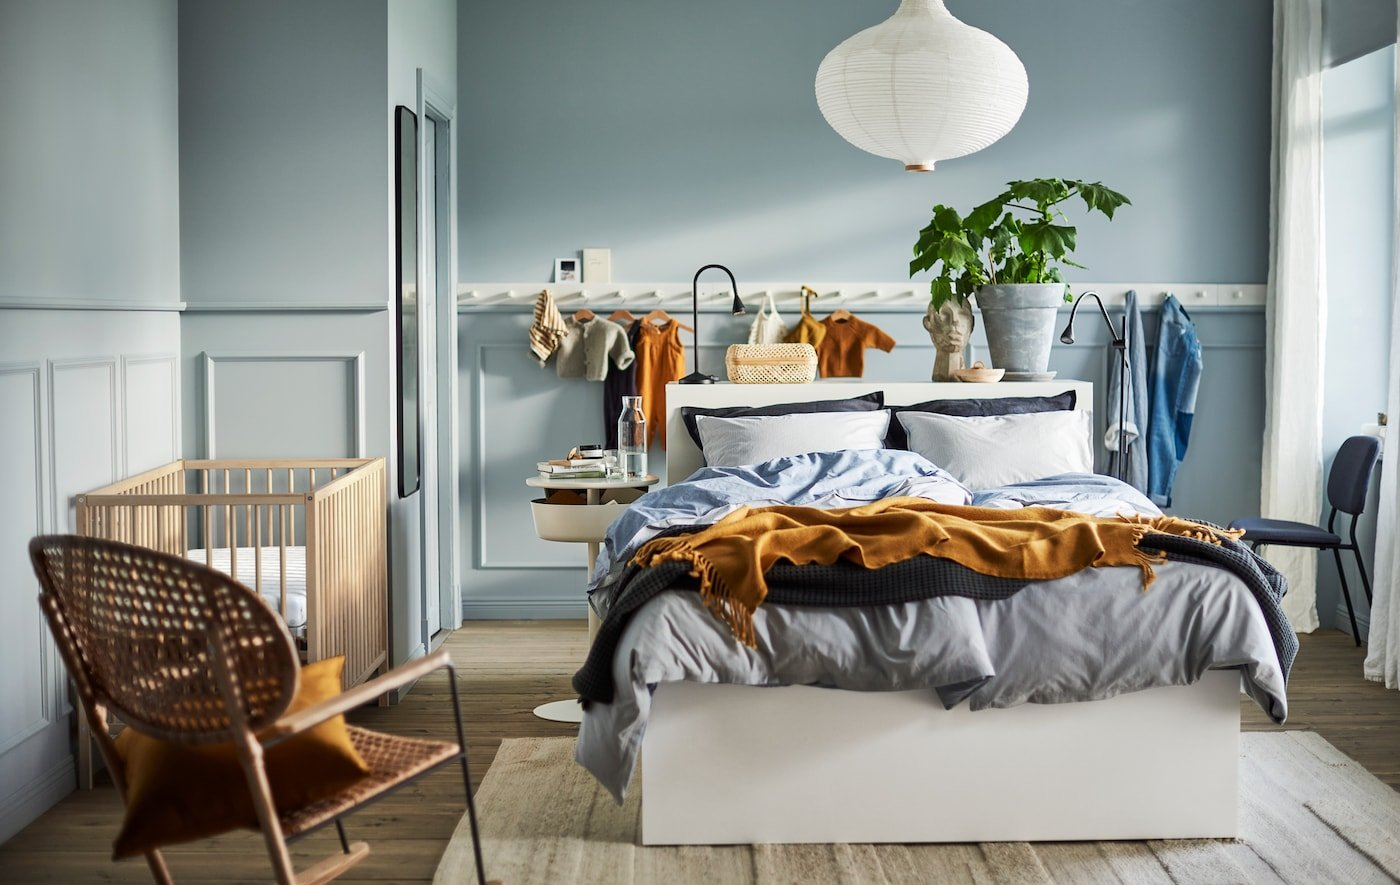 budget friendly decor tips from ikea